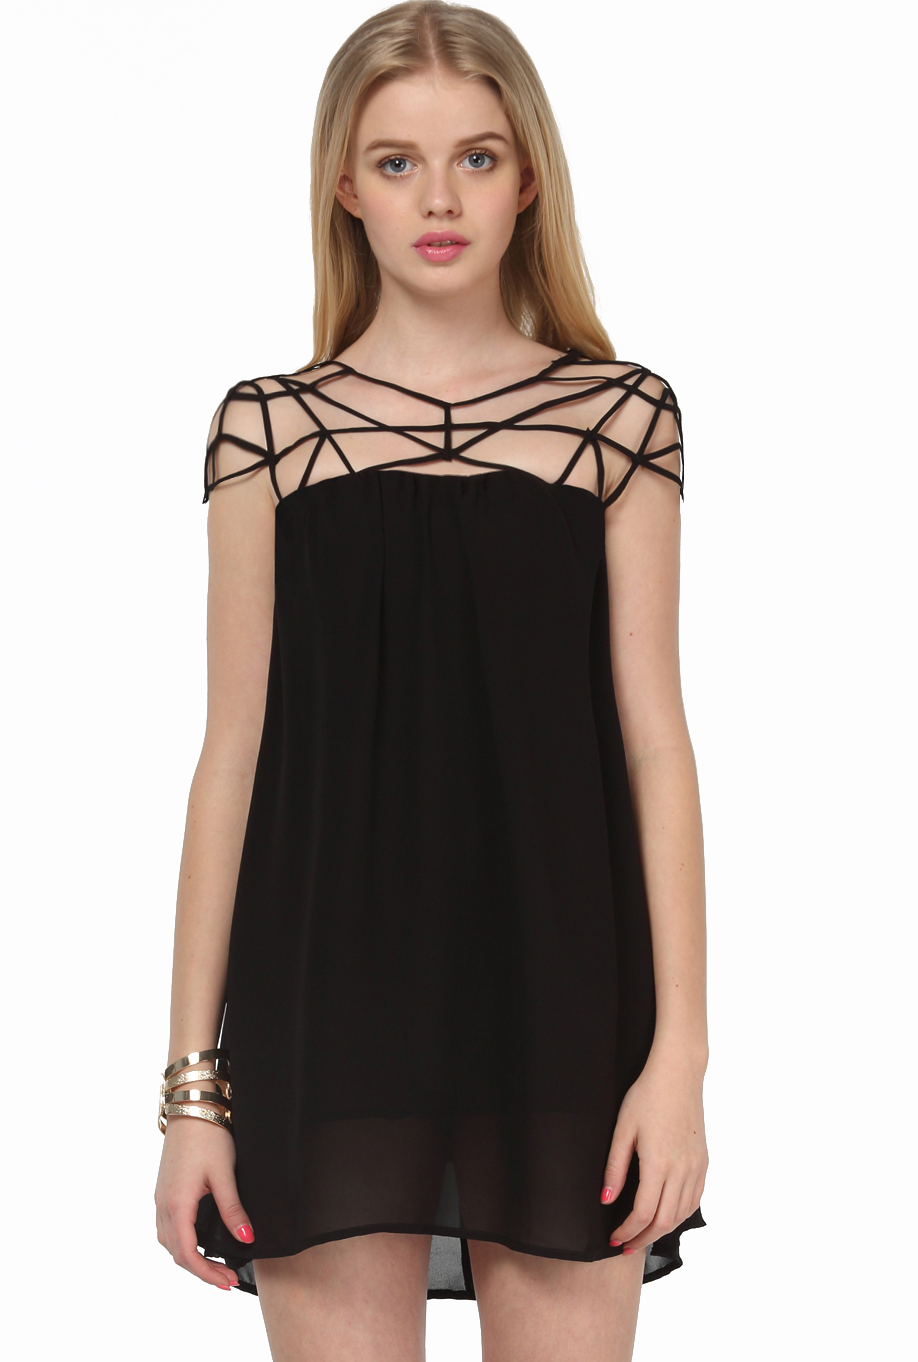 Black Girl Cut Out Shift Chiffon Mini Dress - Sheinside.com